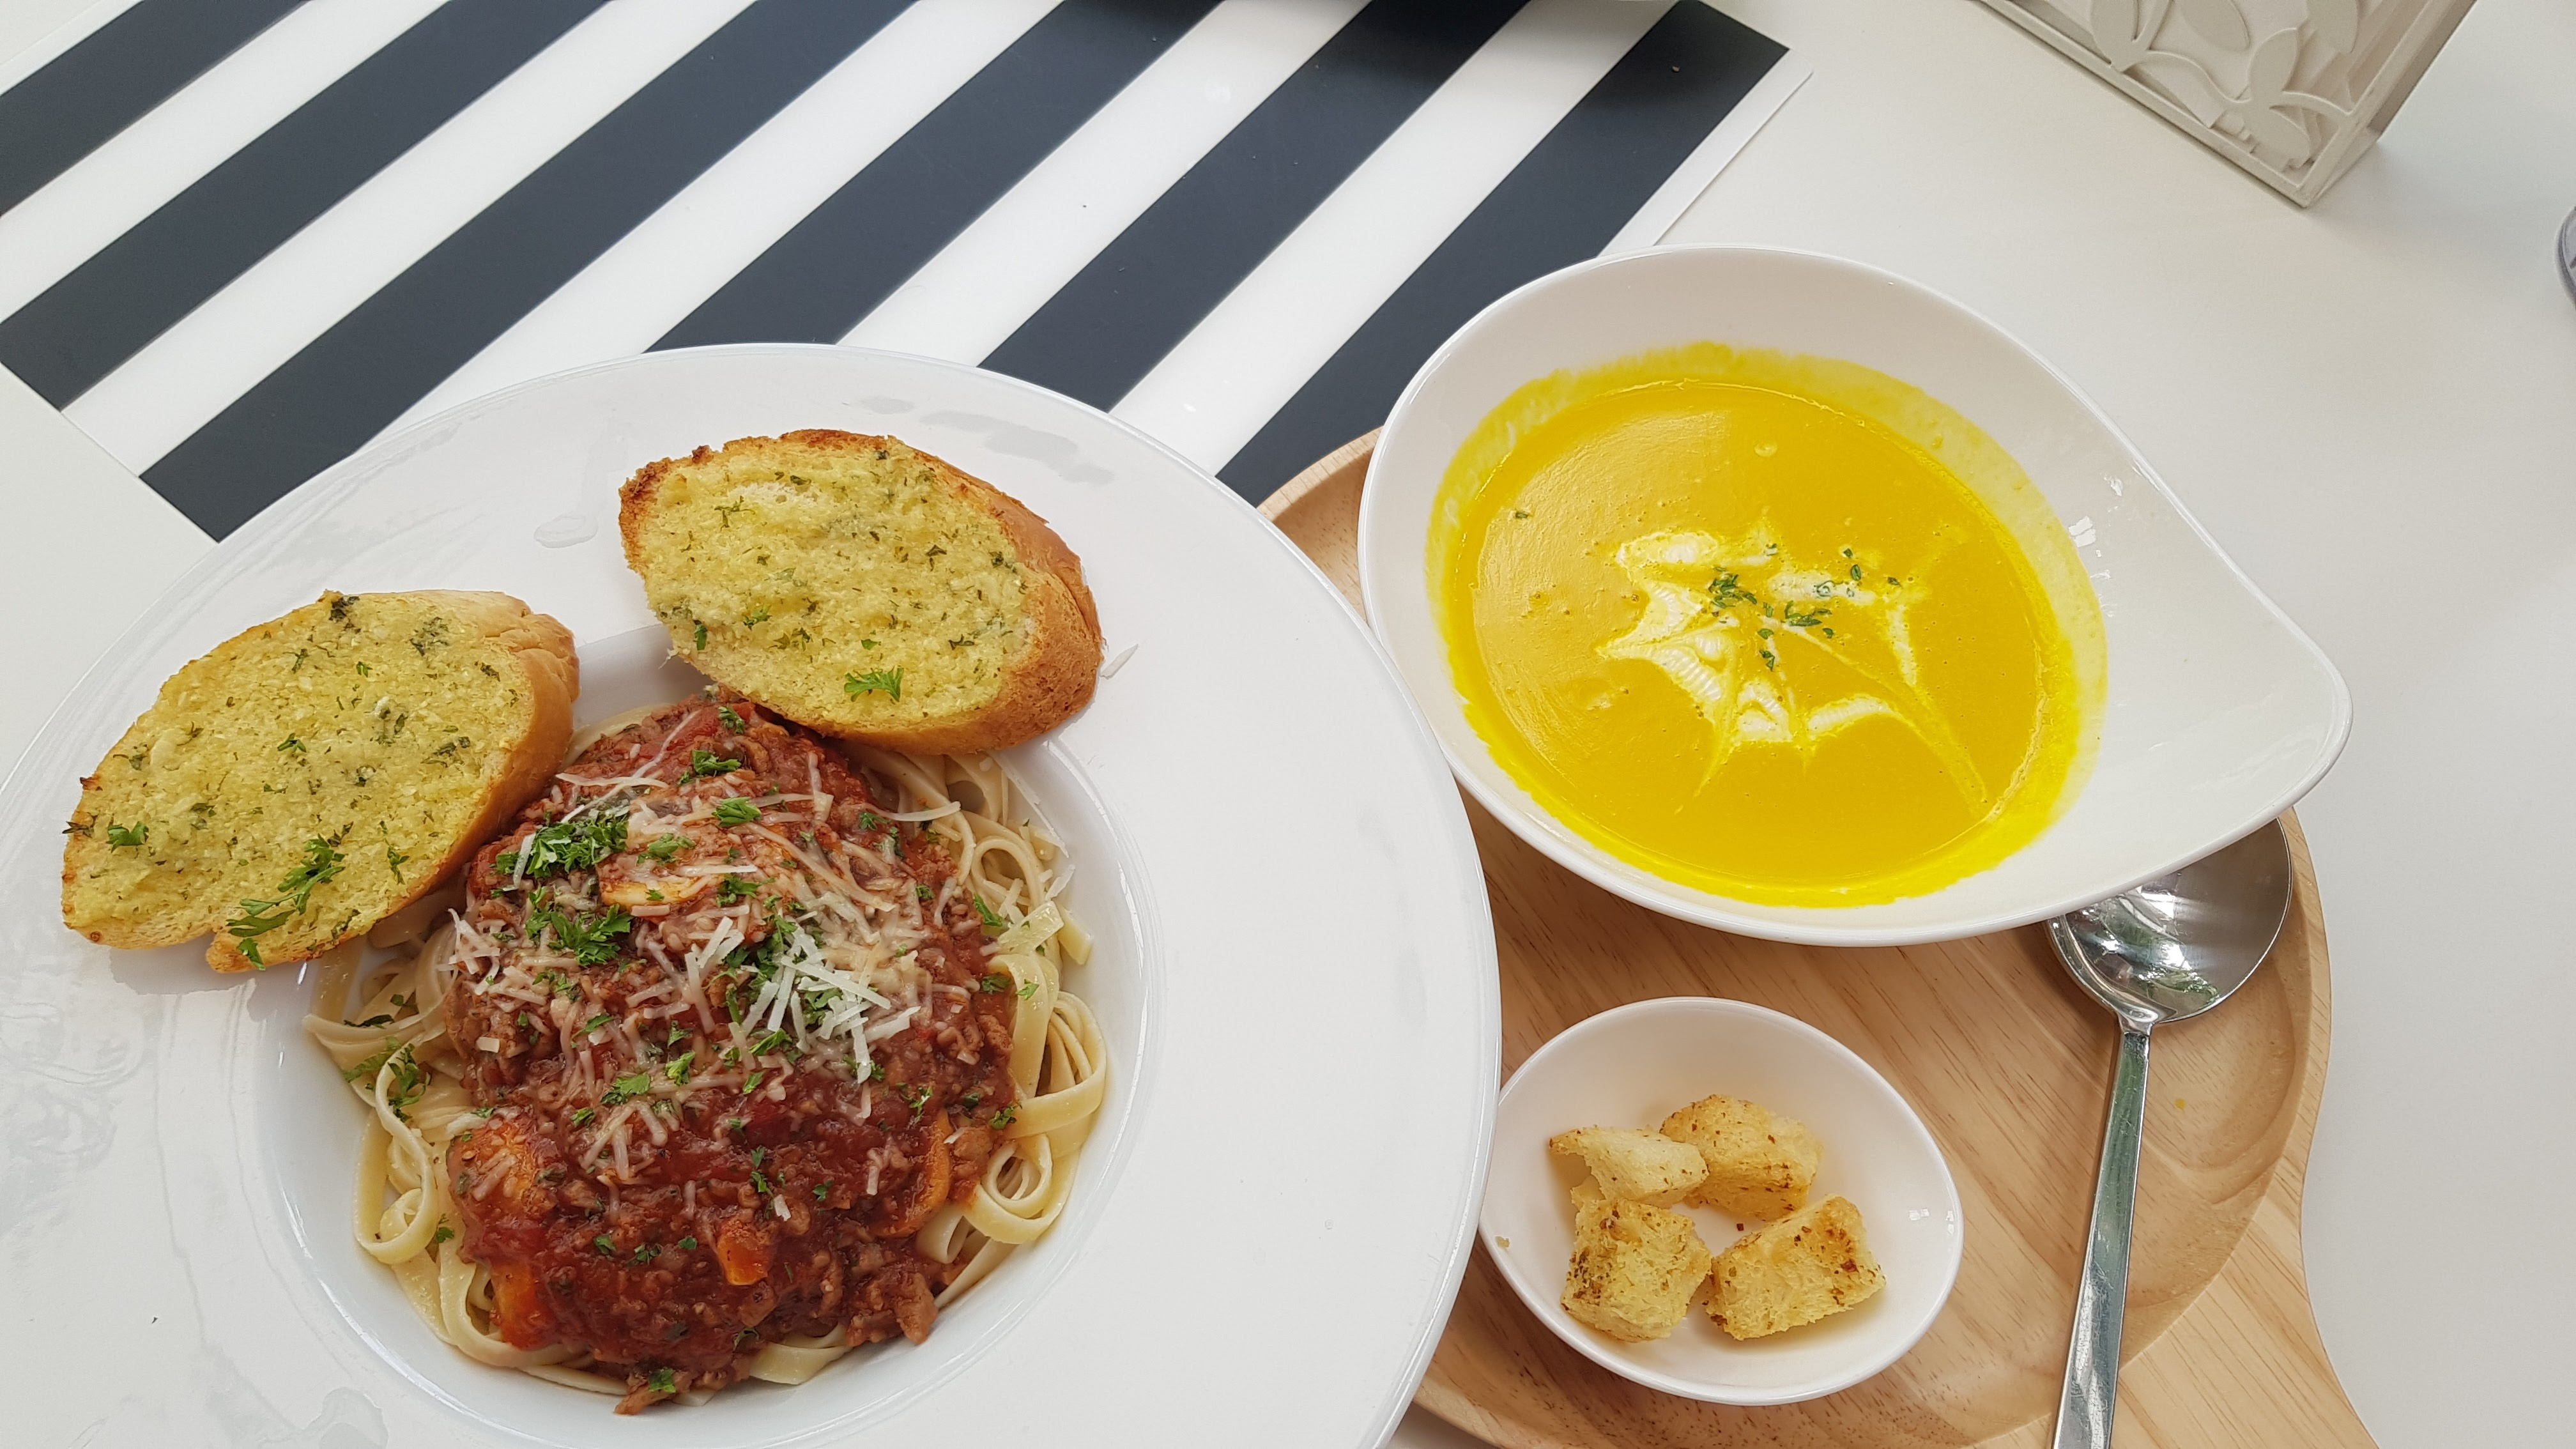 Spaghetti Bolognese and Pumpkin Soup